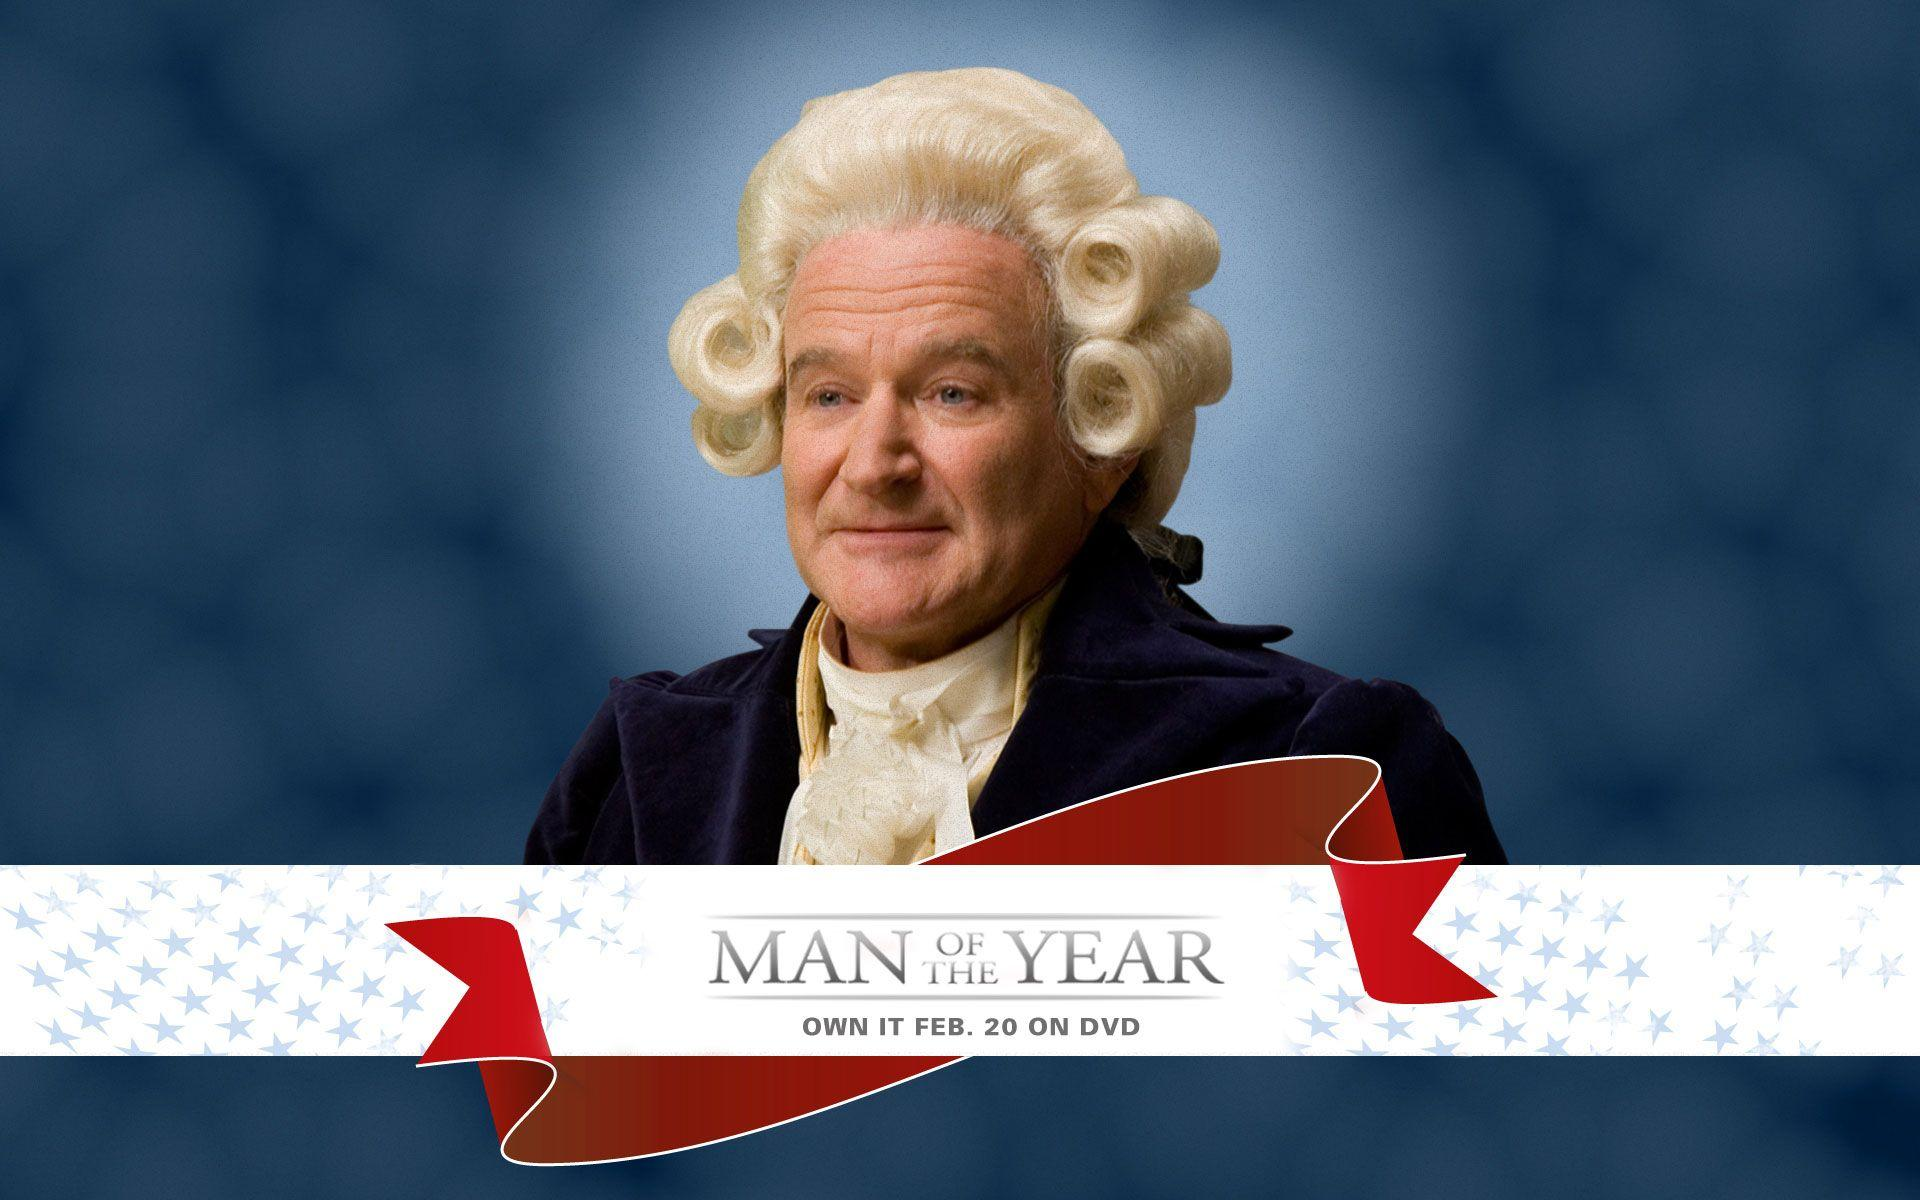 Man of the Year Movie Wallpapers